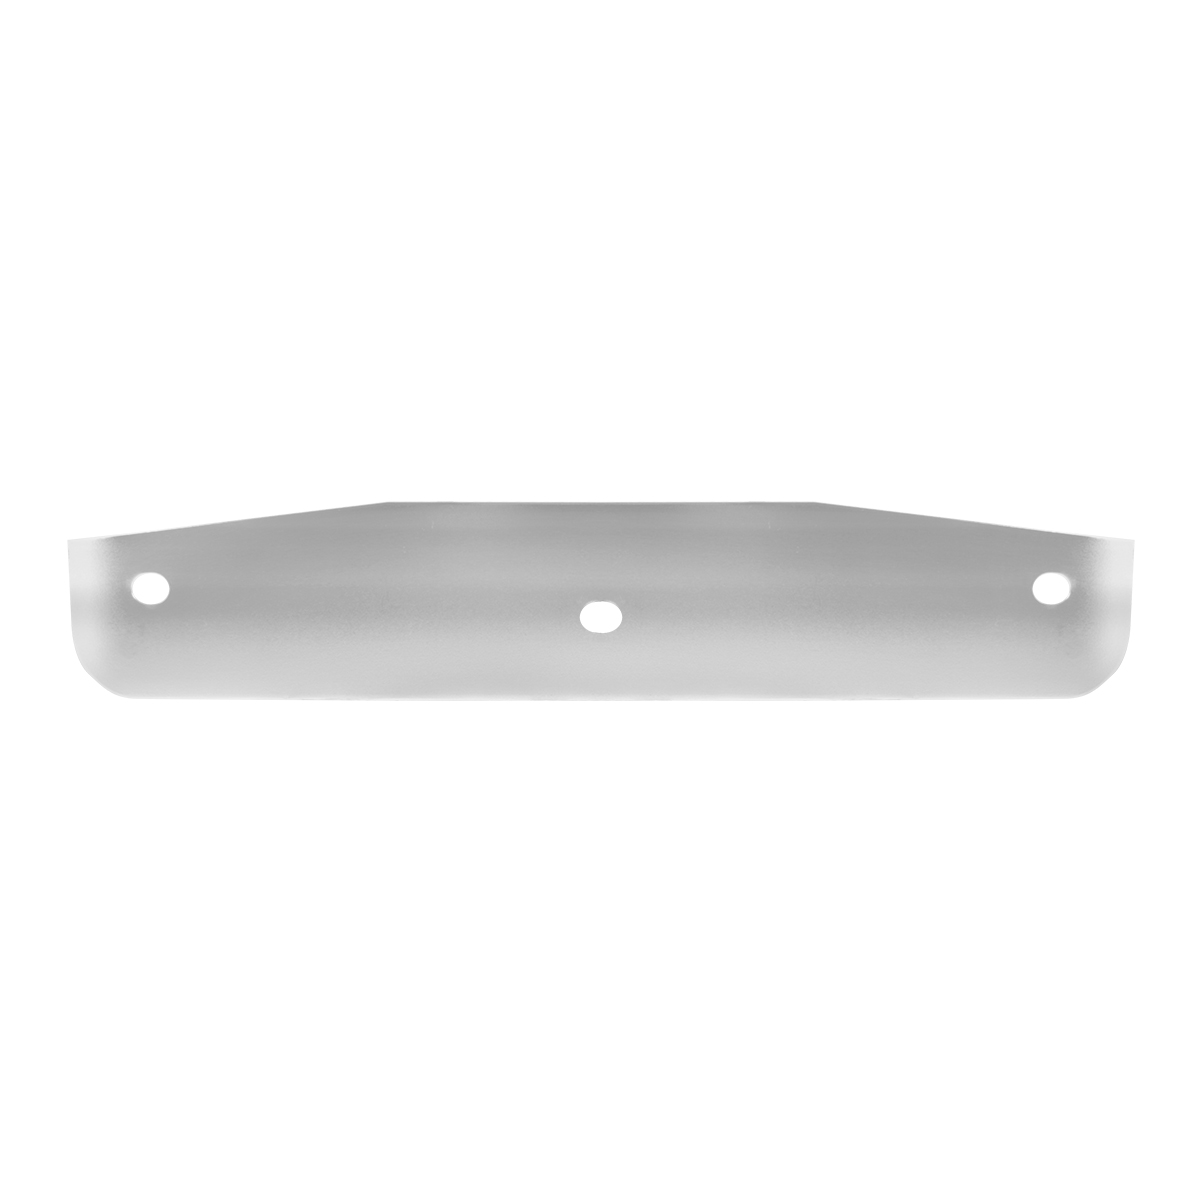 "Backing Plate for Bottom Mudd Flap Plate w/Studs - 16"" (W) x 3"" (H)"